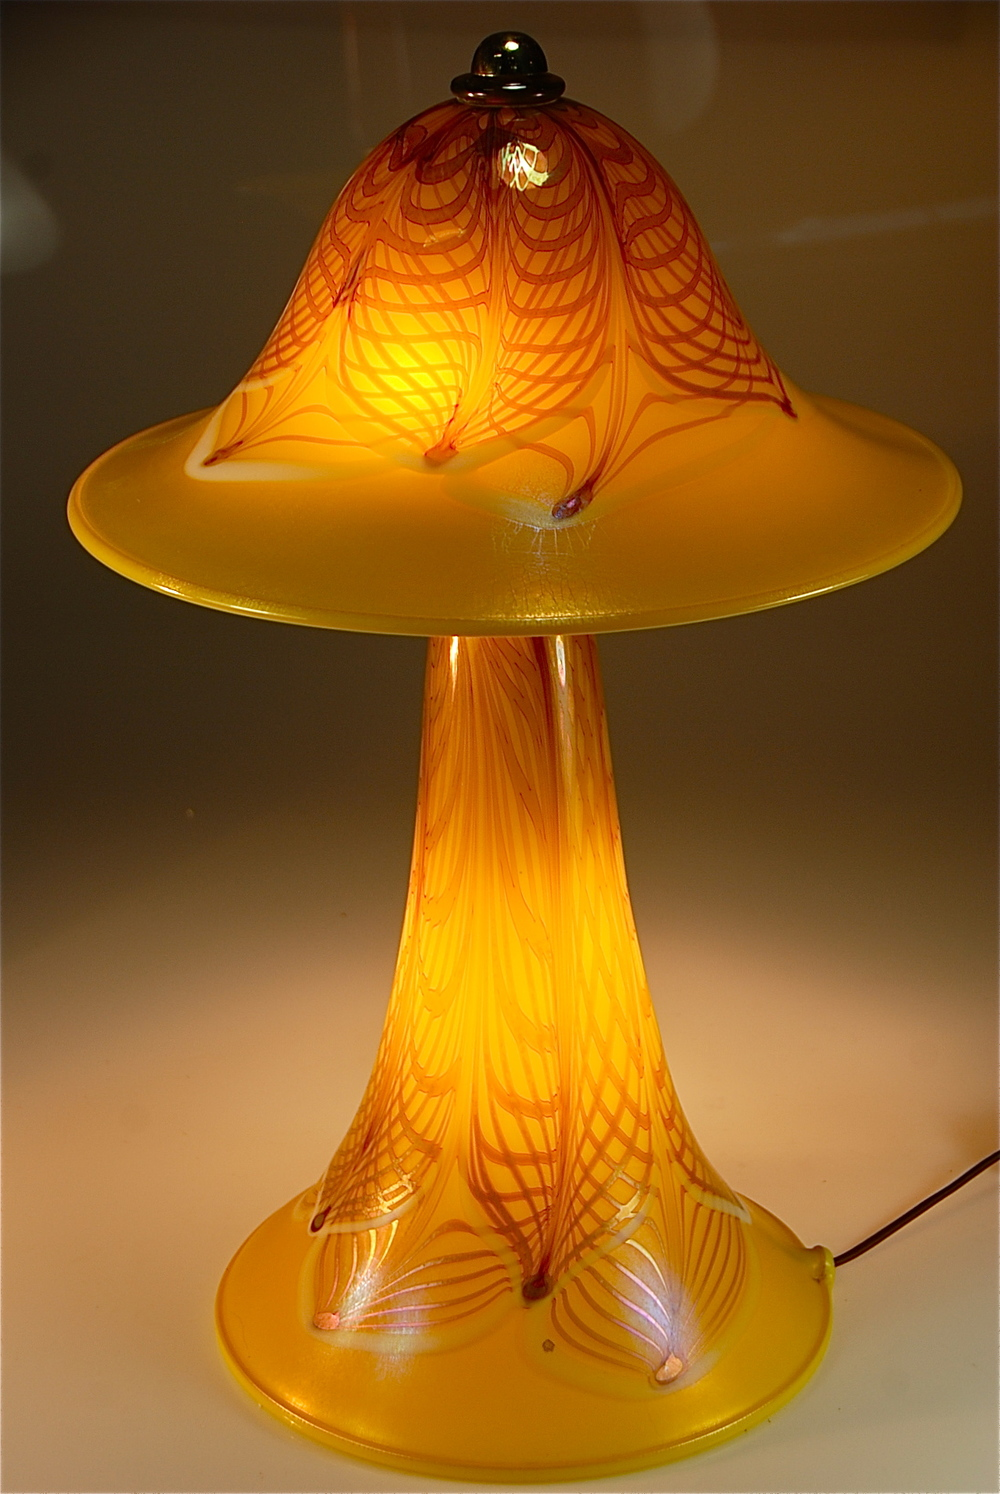 recently finished LEmon Opal with Lace decoration, this two piece lamp has the base and the top illuminated.  There is a dimmer switch in line on cord.  This lamp is for sale, inquire..  rick strini  808 572-6283